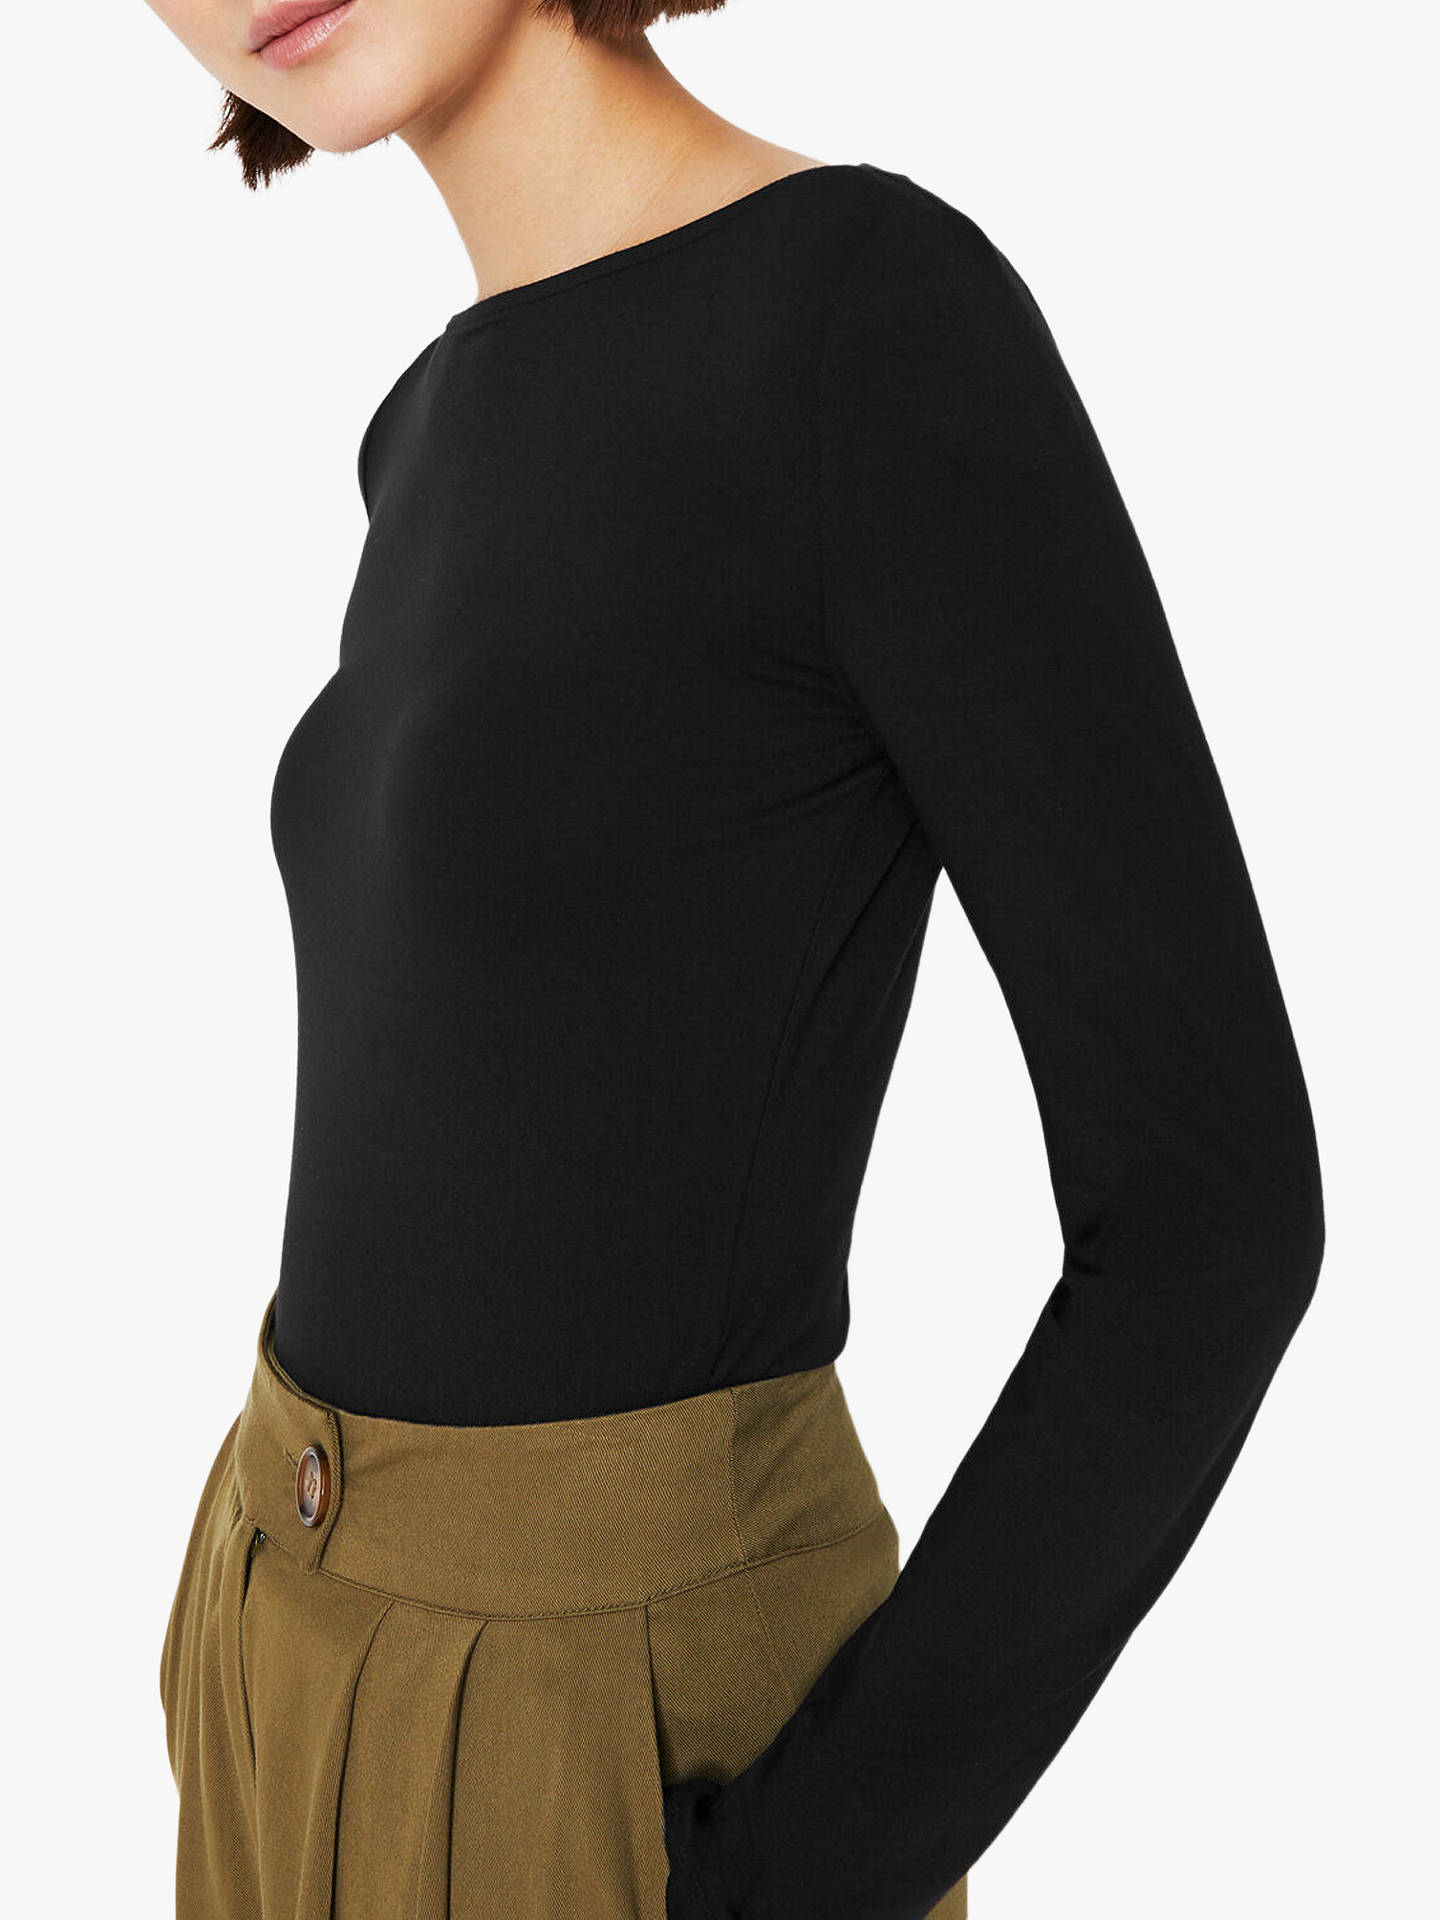 Warehouse Boat Neck Long Sleeve Top, Black by Warehouse